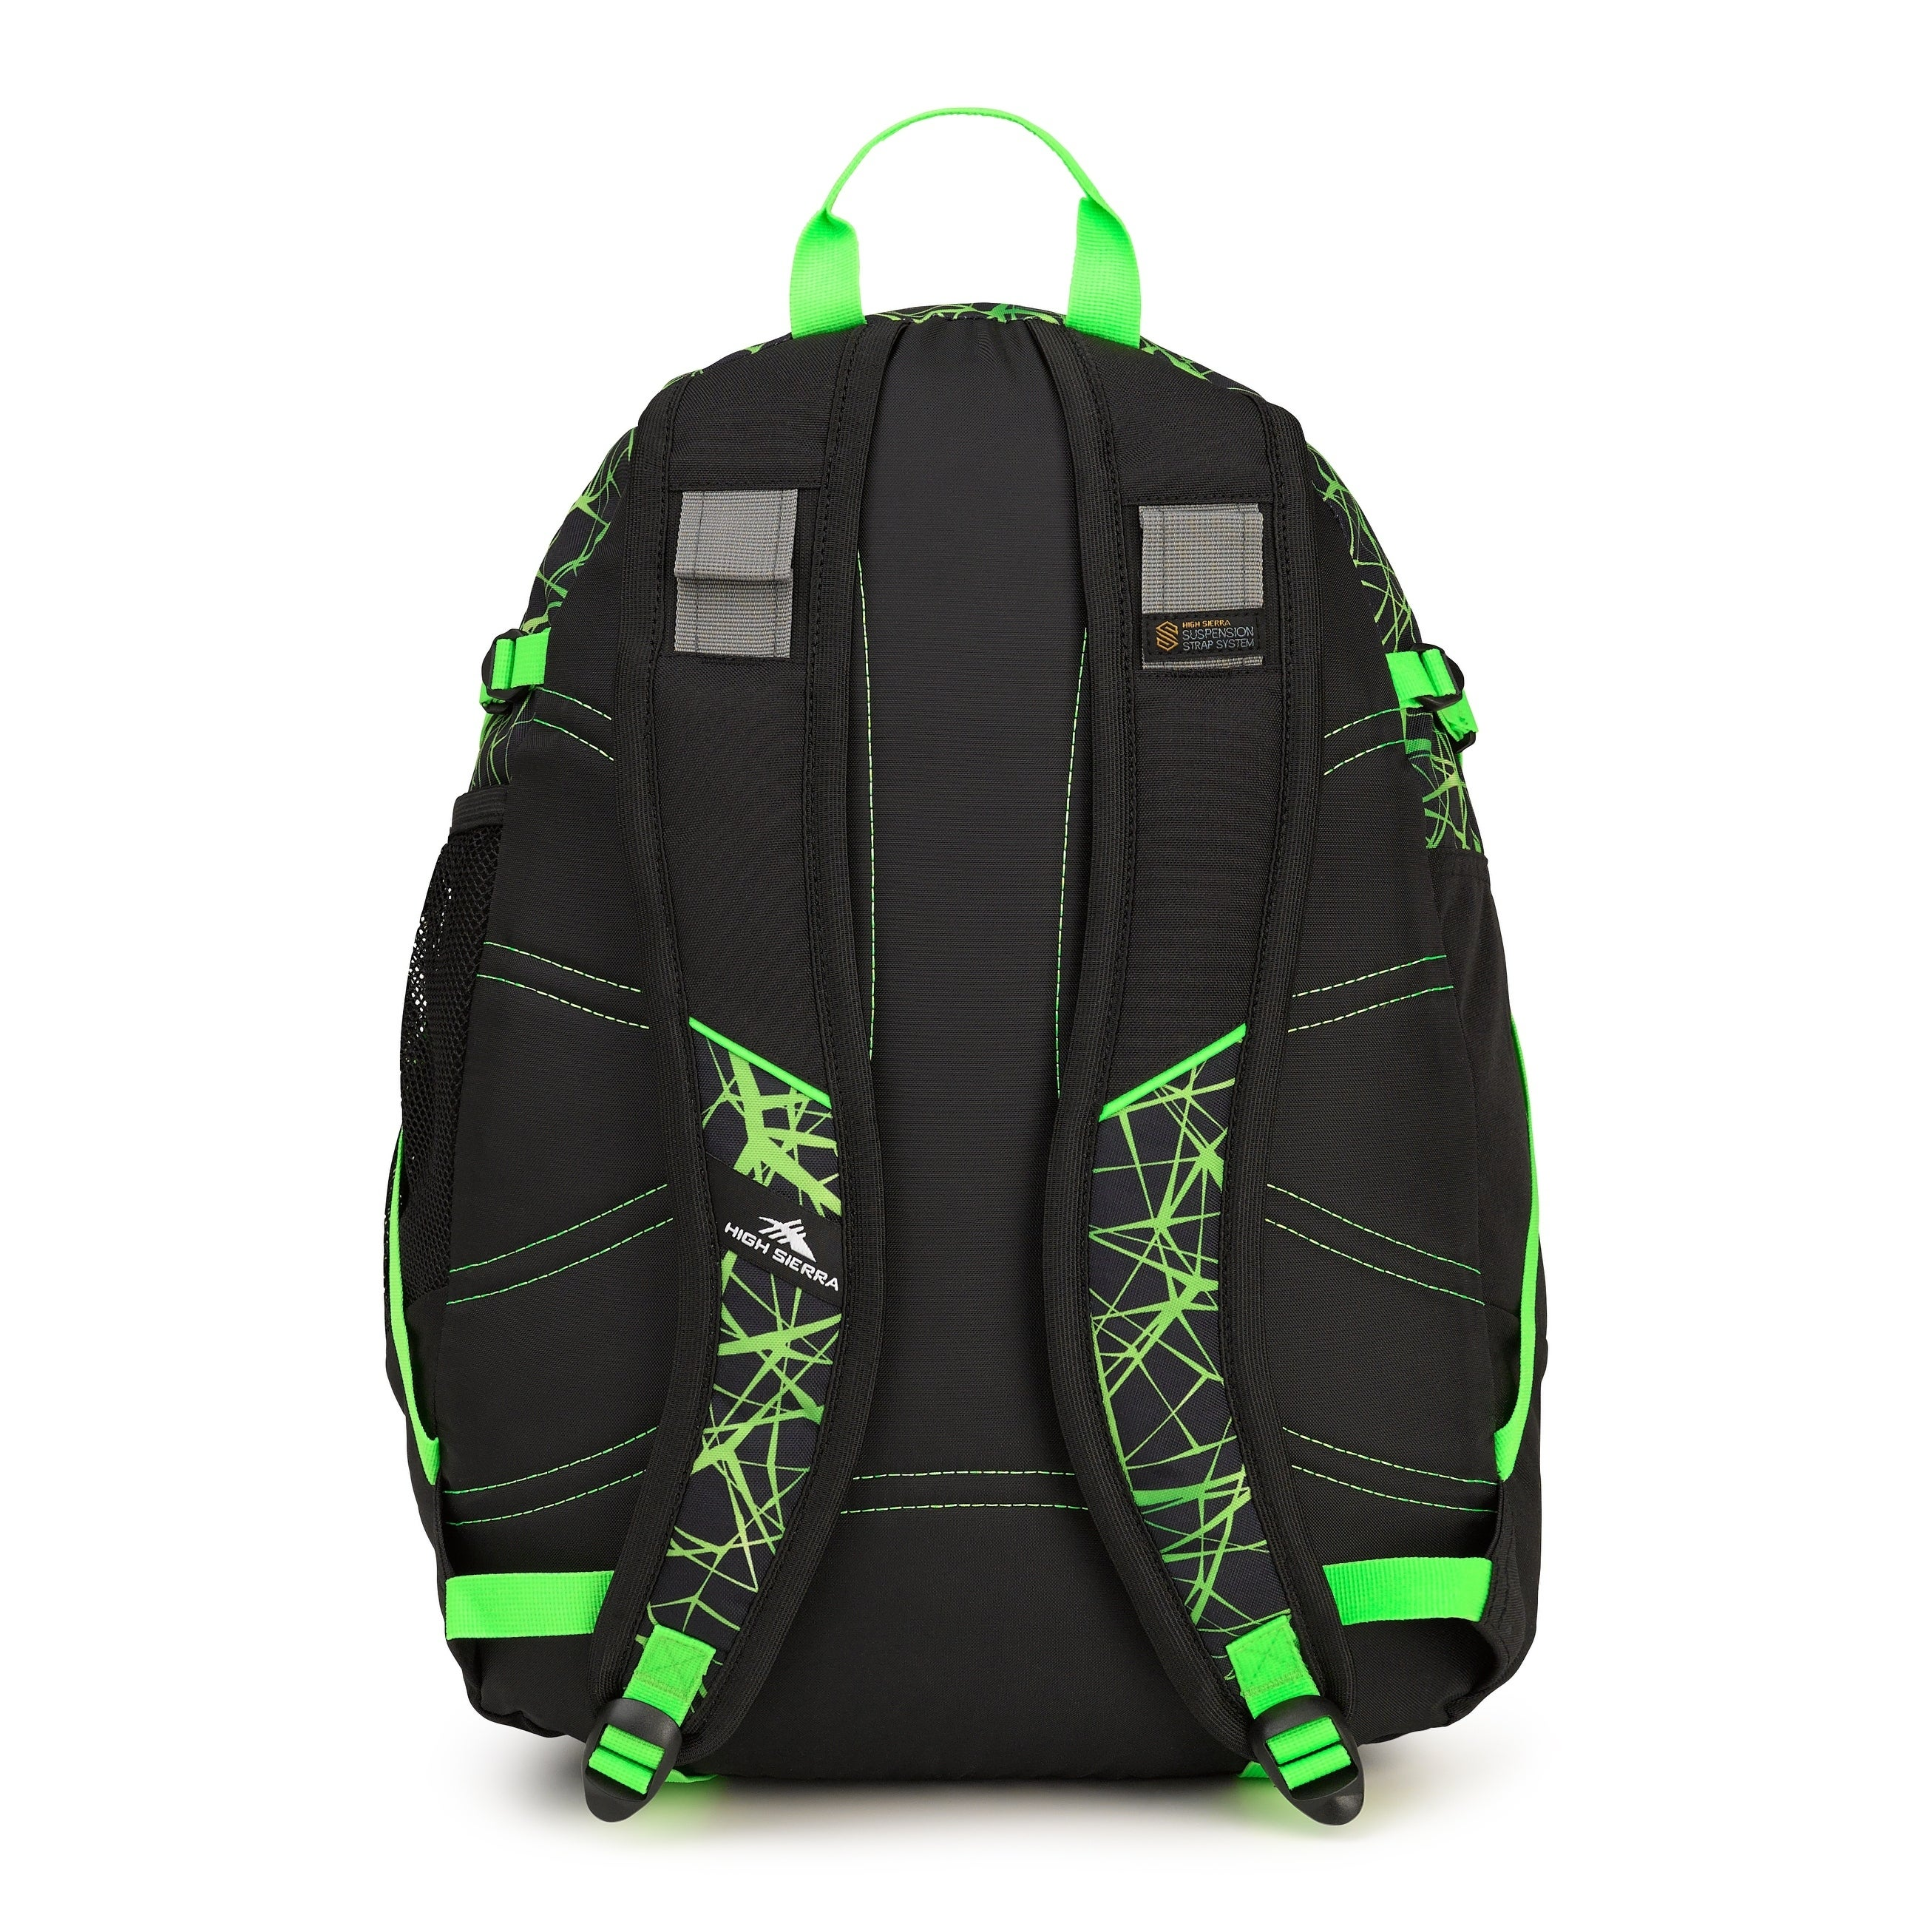 d3bf950c17 Shop High Sierra Fatboy Digital Web Black Lime 19.5-inch Backpack - Free  Shipping On Orders Over  45 - Overstock.com - 17166032